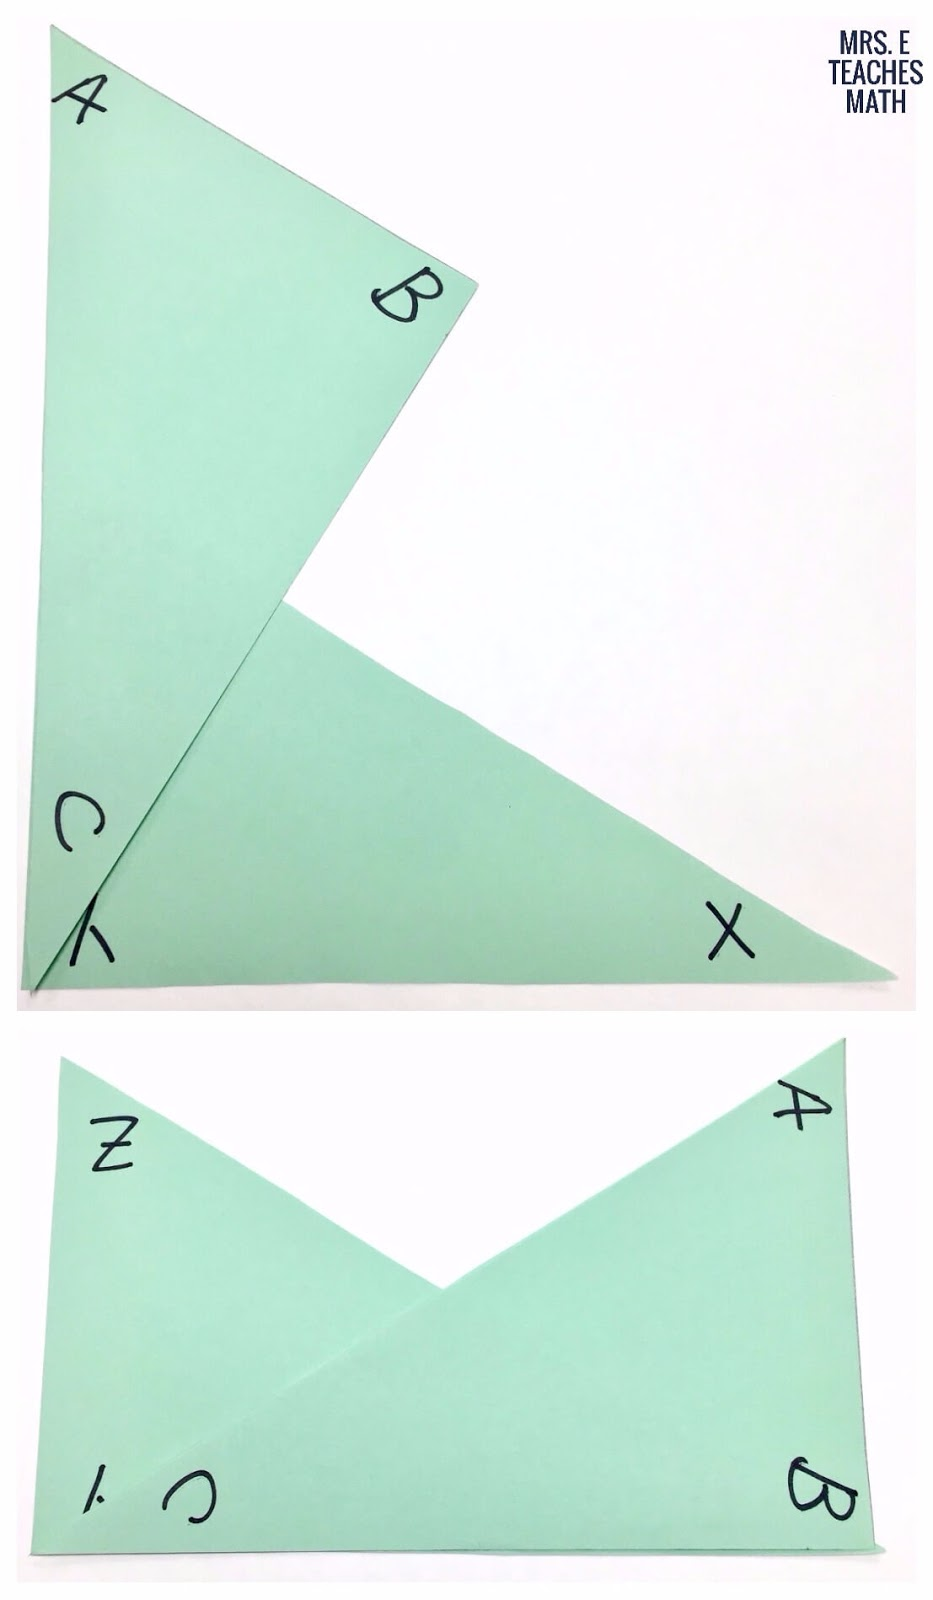 Help students visualize overlapping triangles mrs e teaches math investigating overlapping triangles this is a great hands on activity to do before congruent robcynllc Gallery